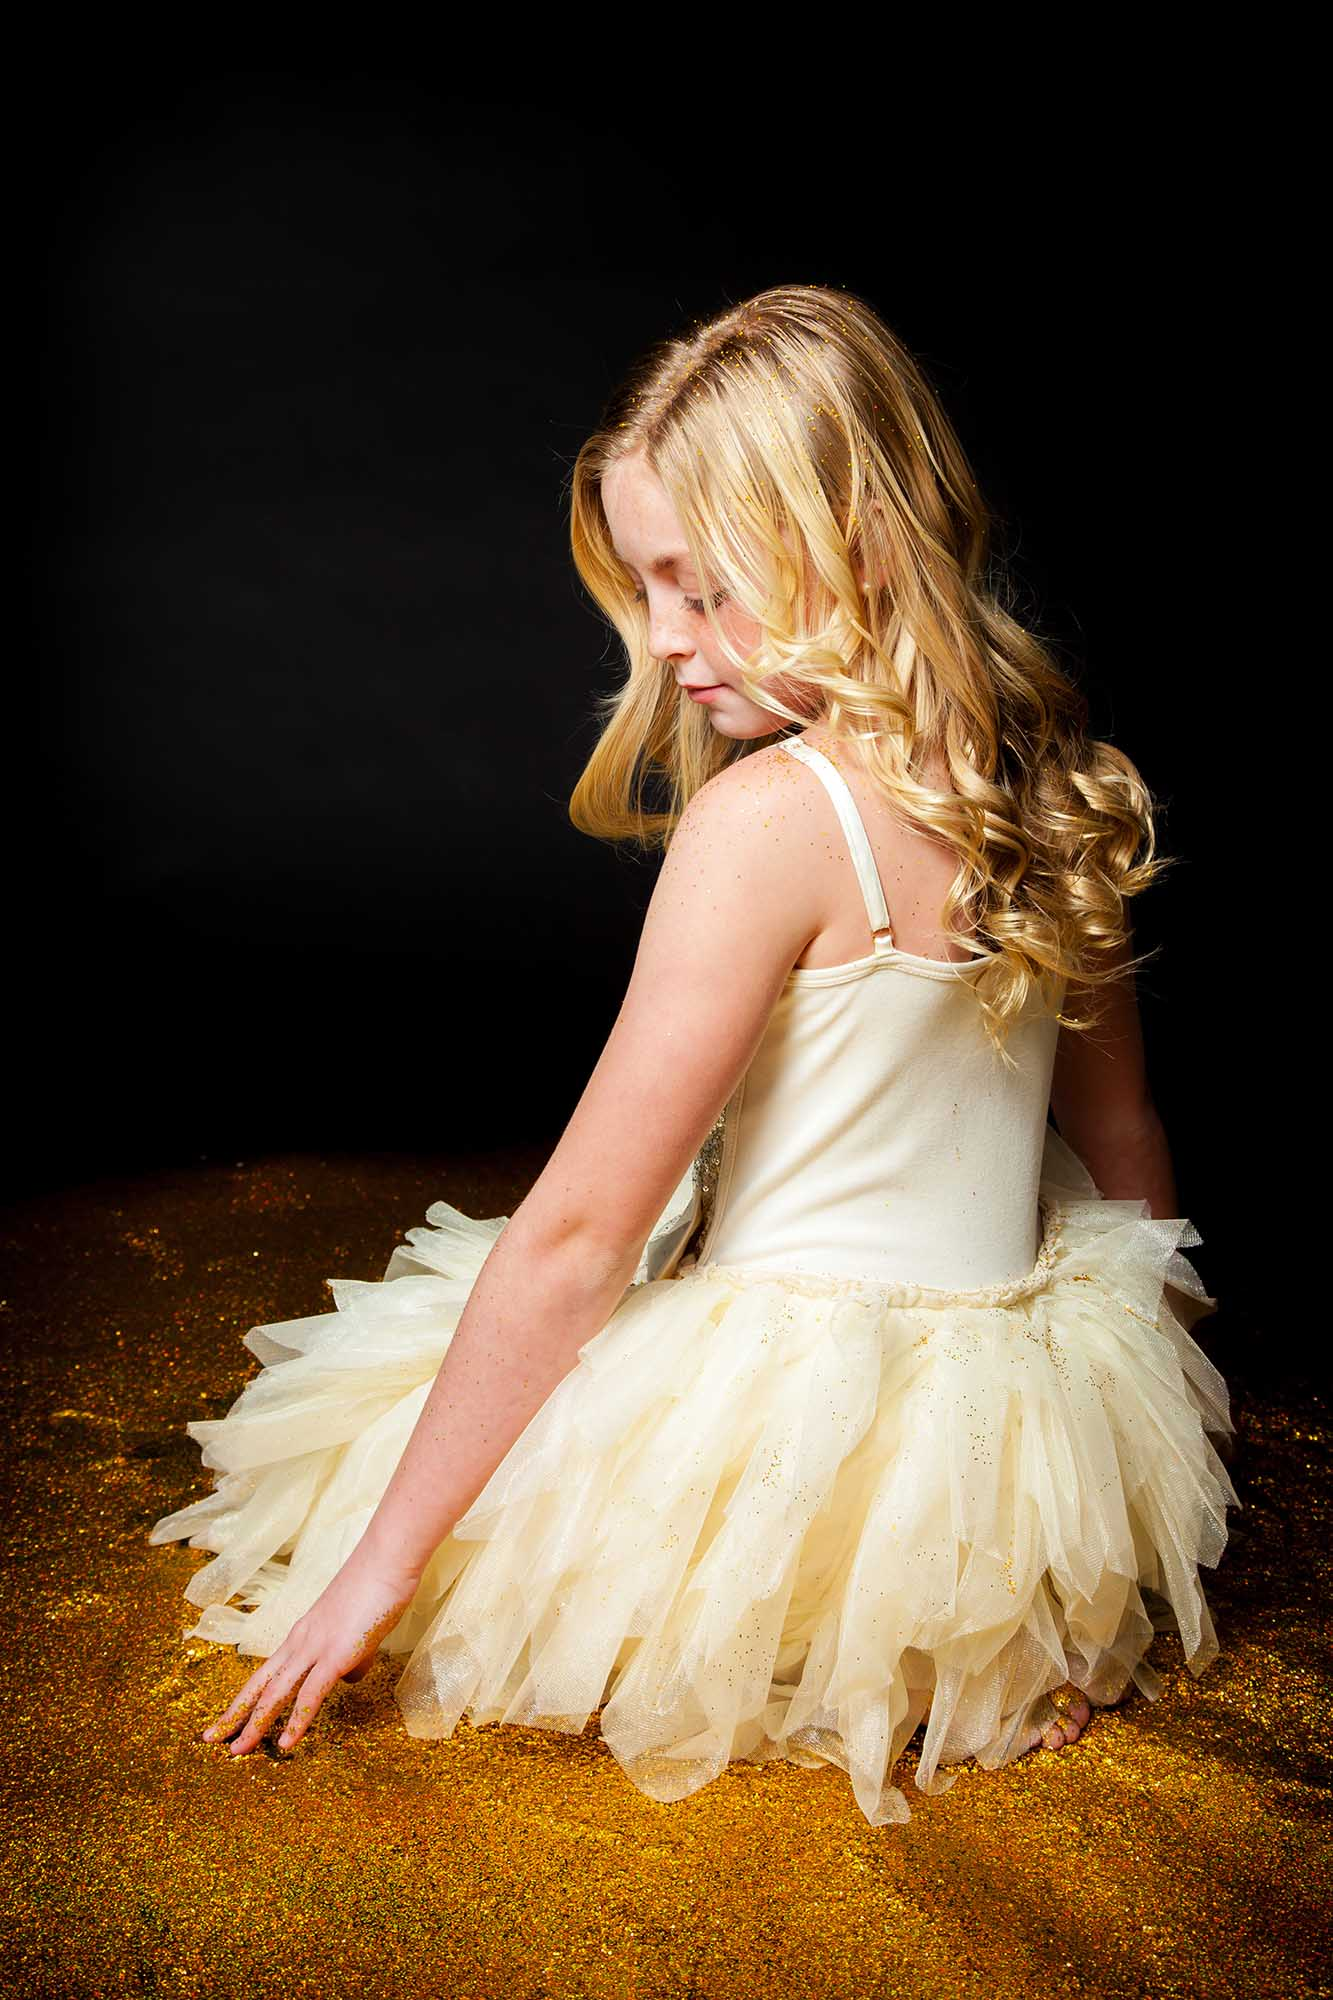 Glitter Session | Fine Art Child photographer in Sussex, Surrey, East Grinstead & Crawley 02